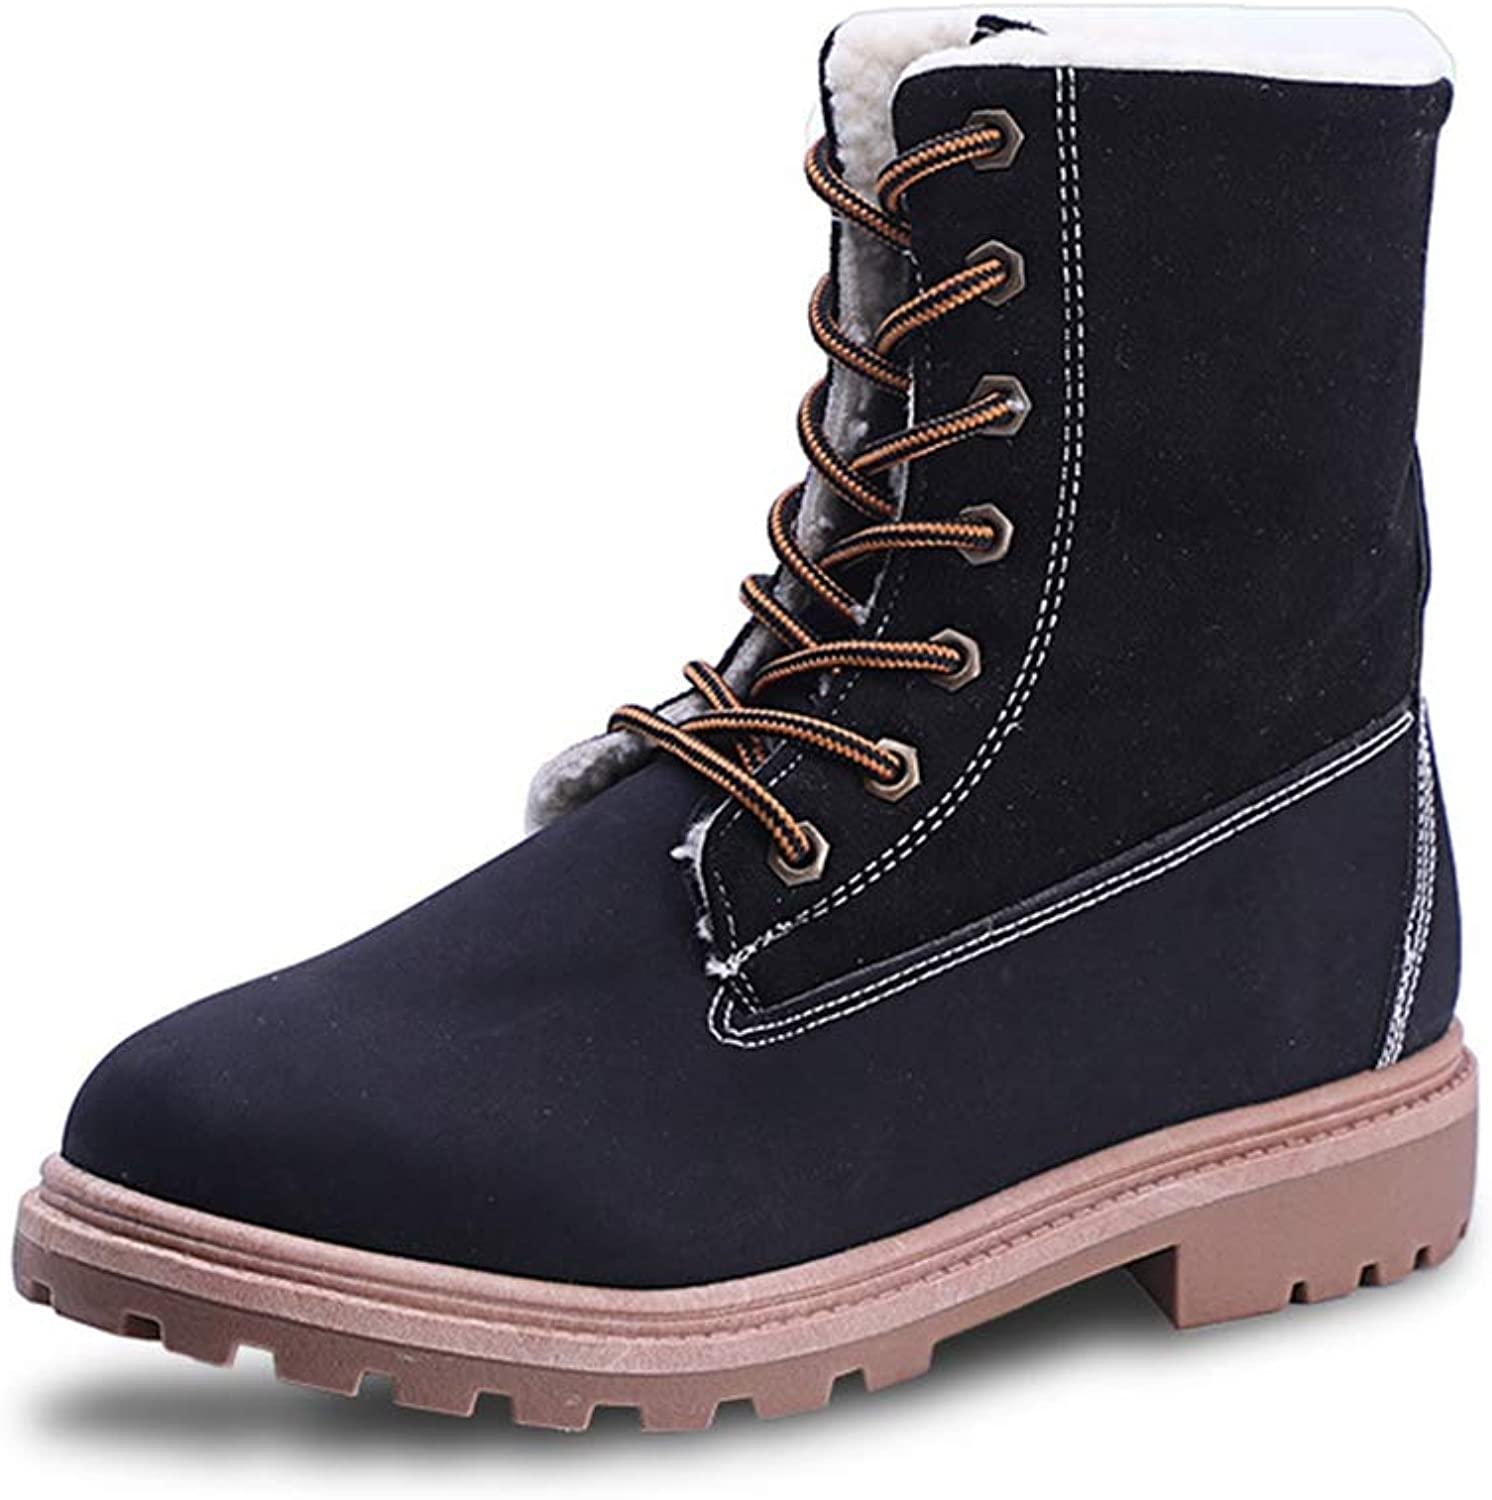 York Zhu Women's Martin Boots,Classic Women Winter Suede Ankle Snow Boots Female